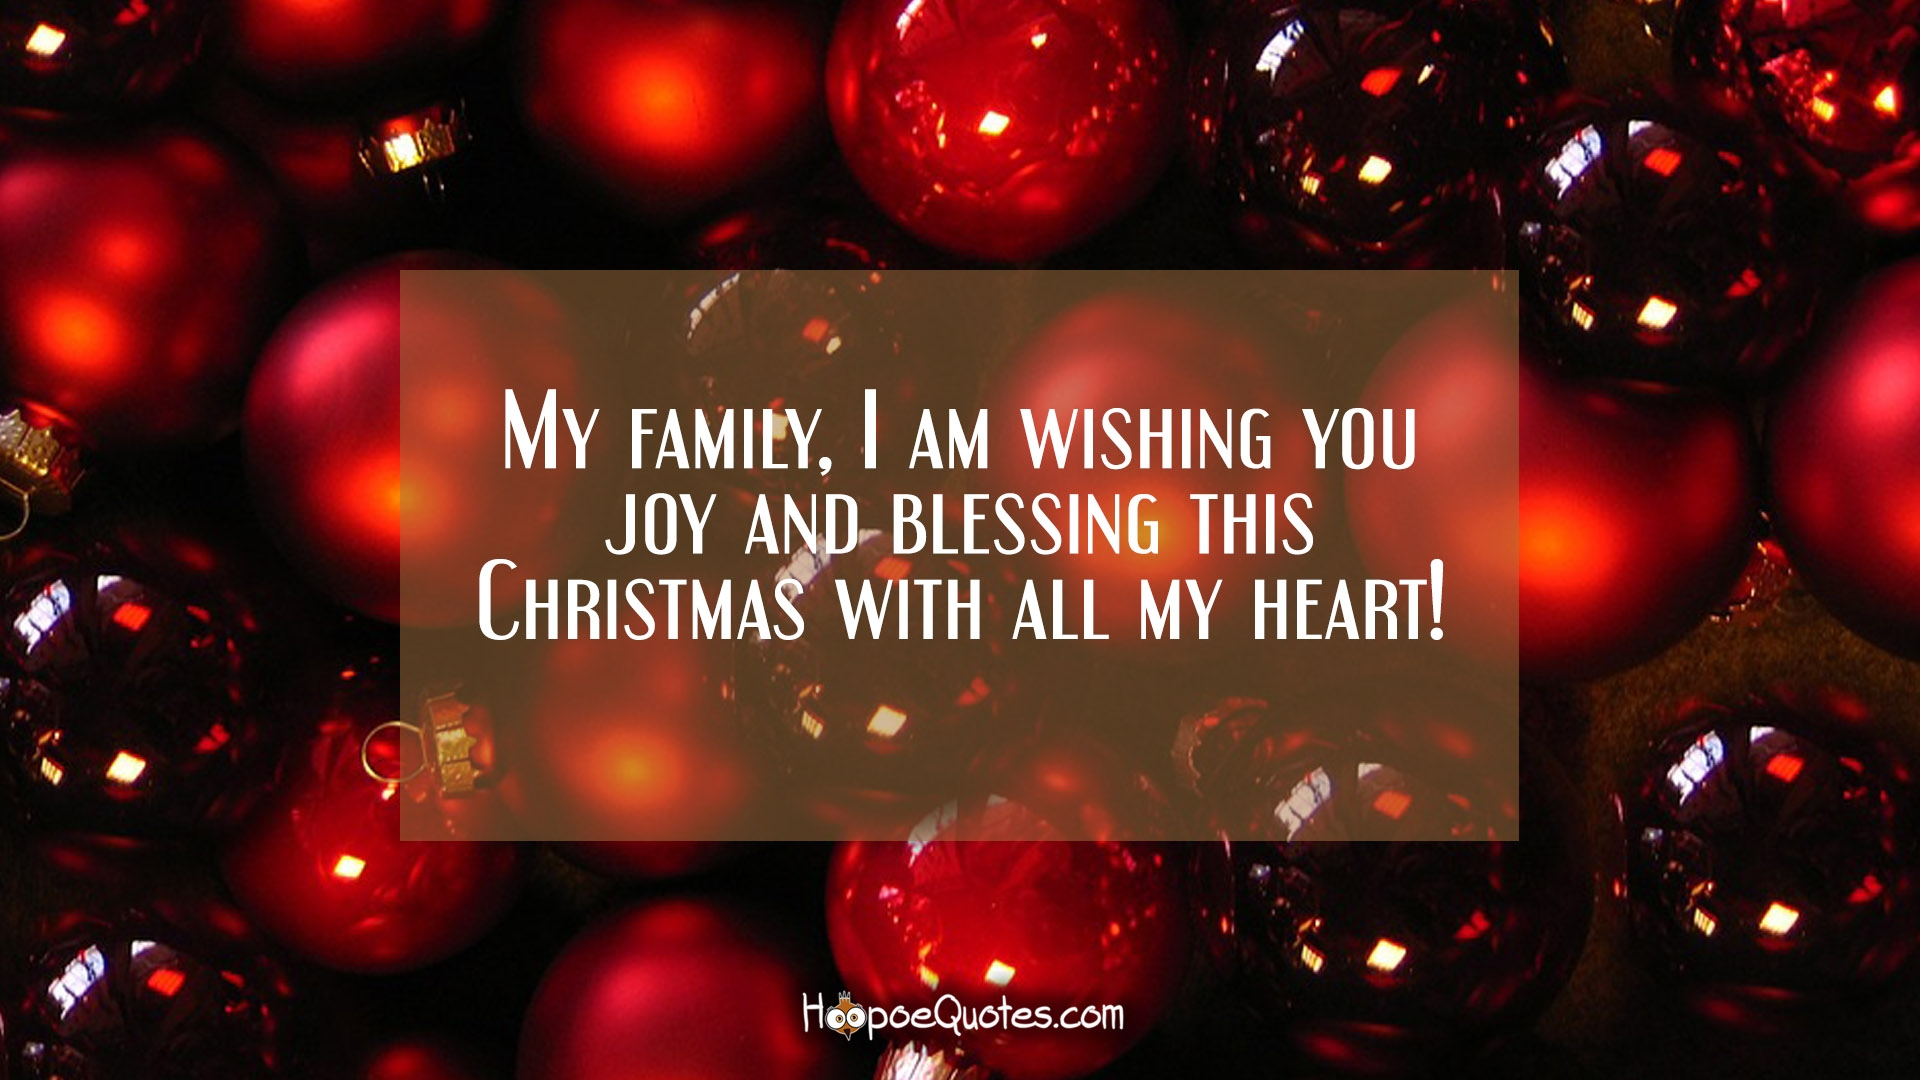 My family, I am wishing you joy and blessing this Christmas with all ...